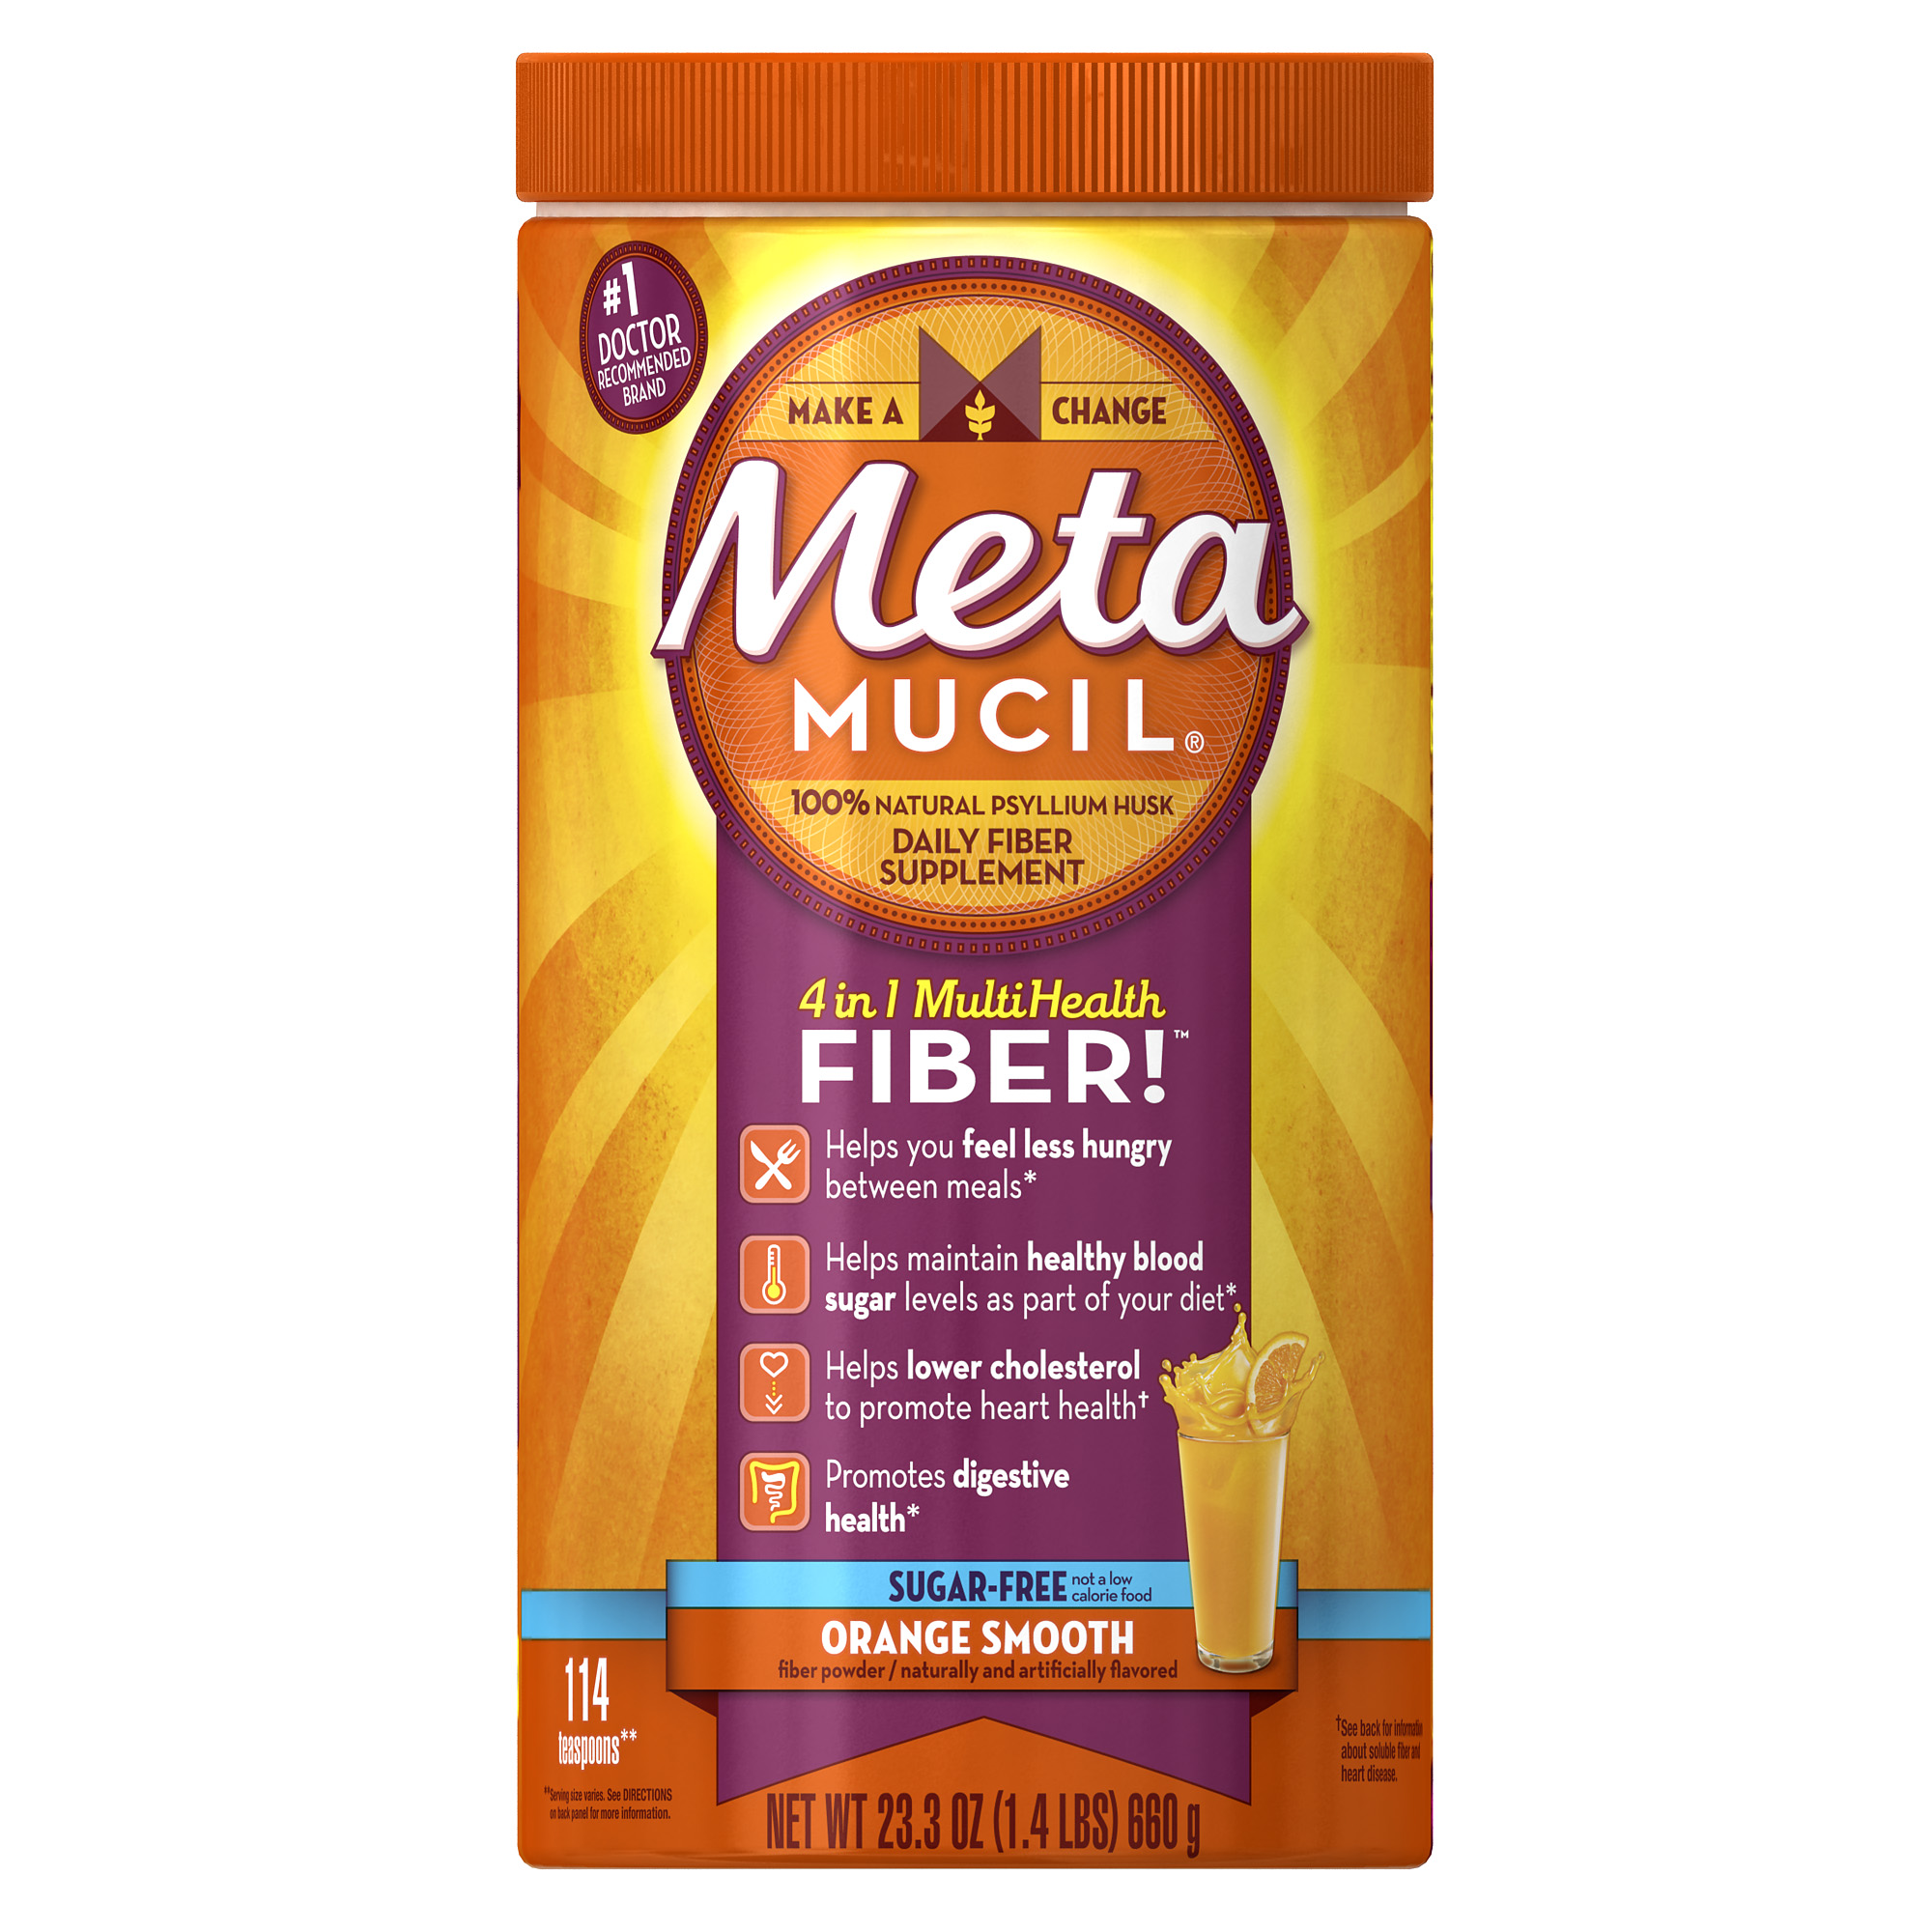 Metamucil Psyllium Fiber Supplement by Meta Orange Smooth Sugar Free Powder 23.3 oz 114 doses